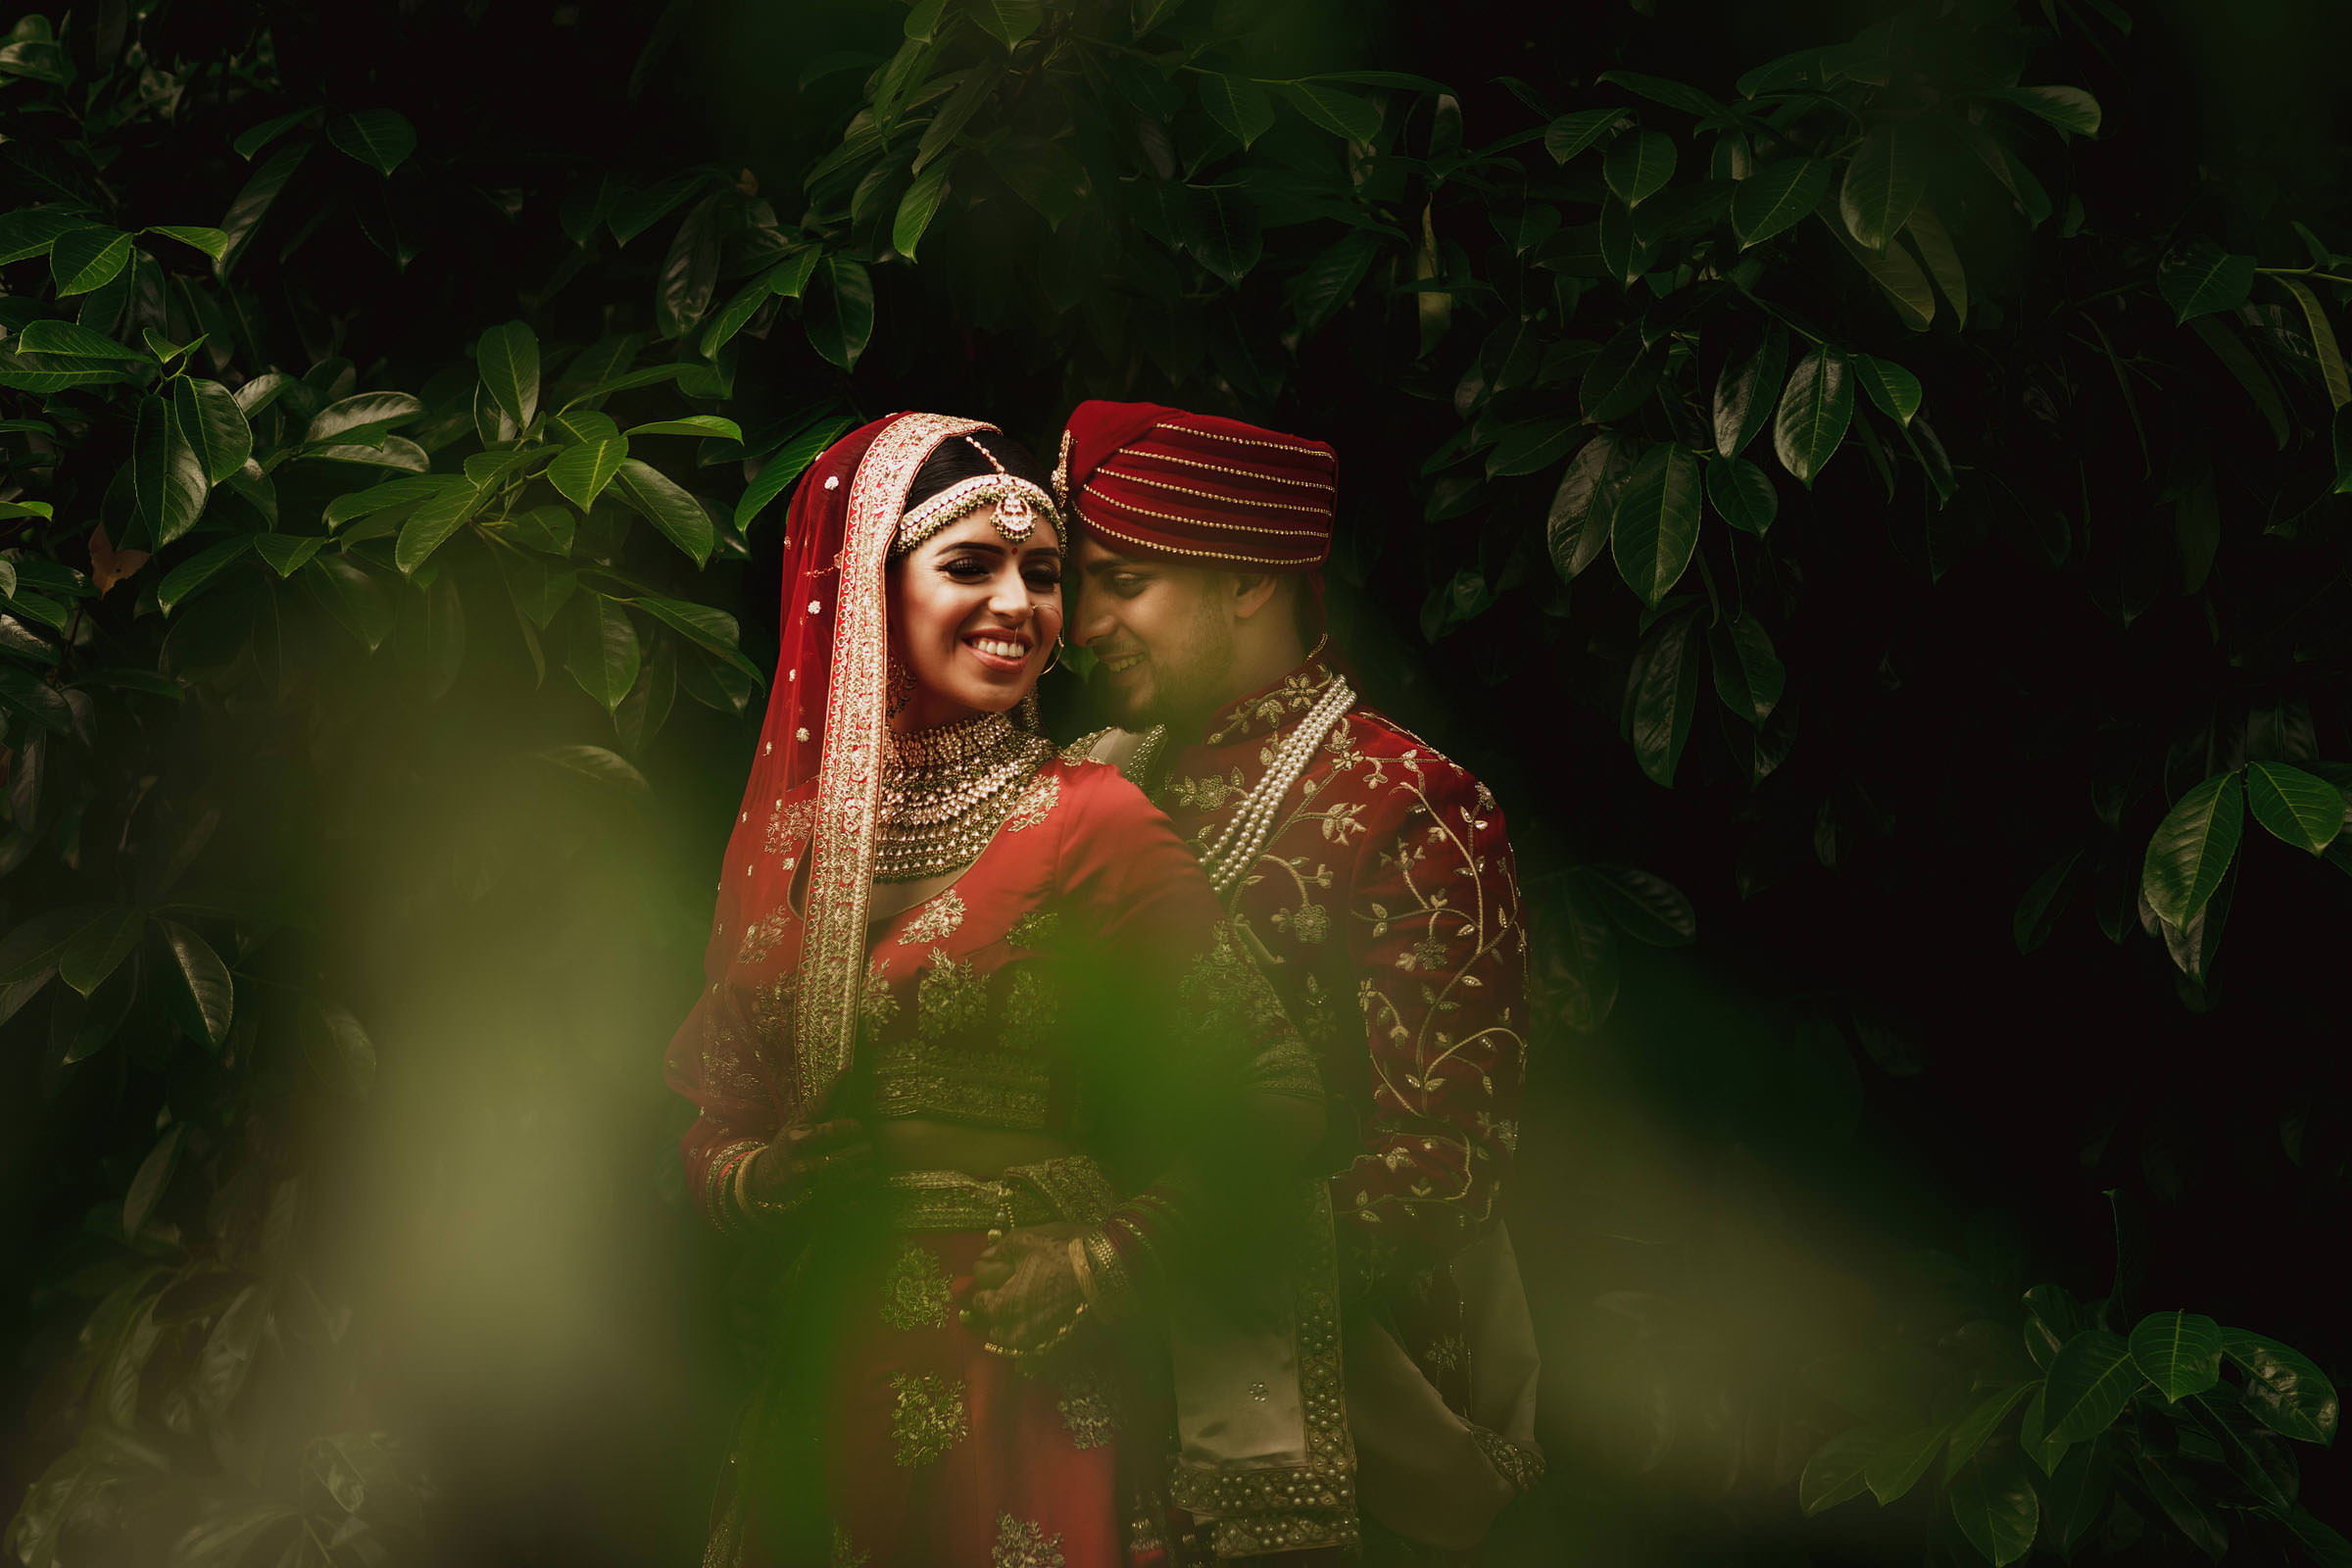 Bride and groom in garden - Photo by F5 Photography